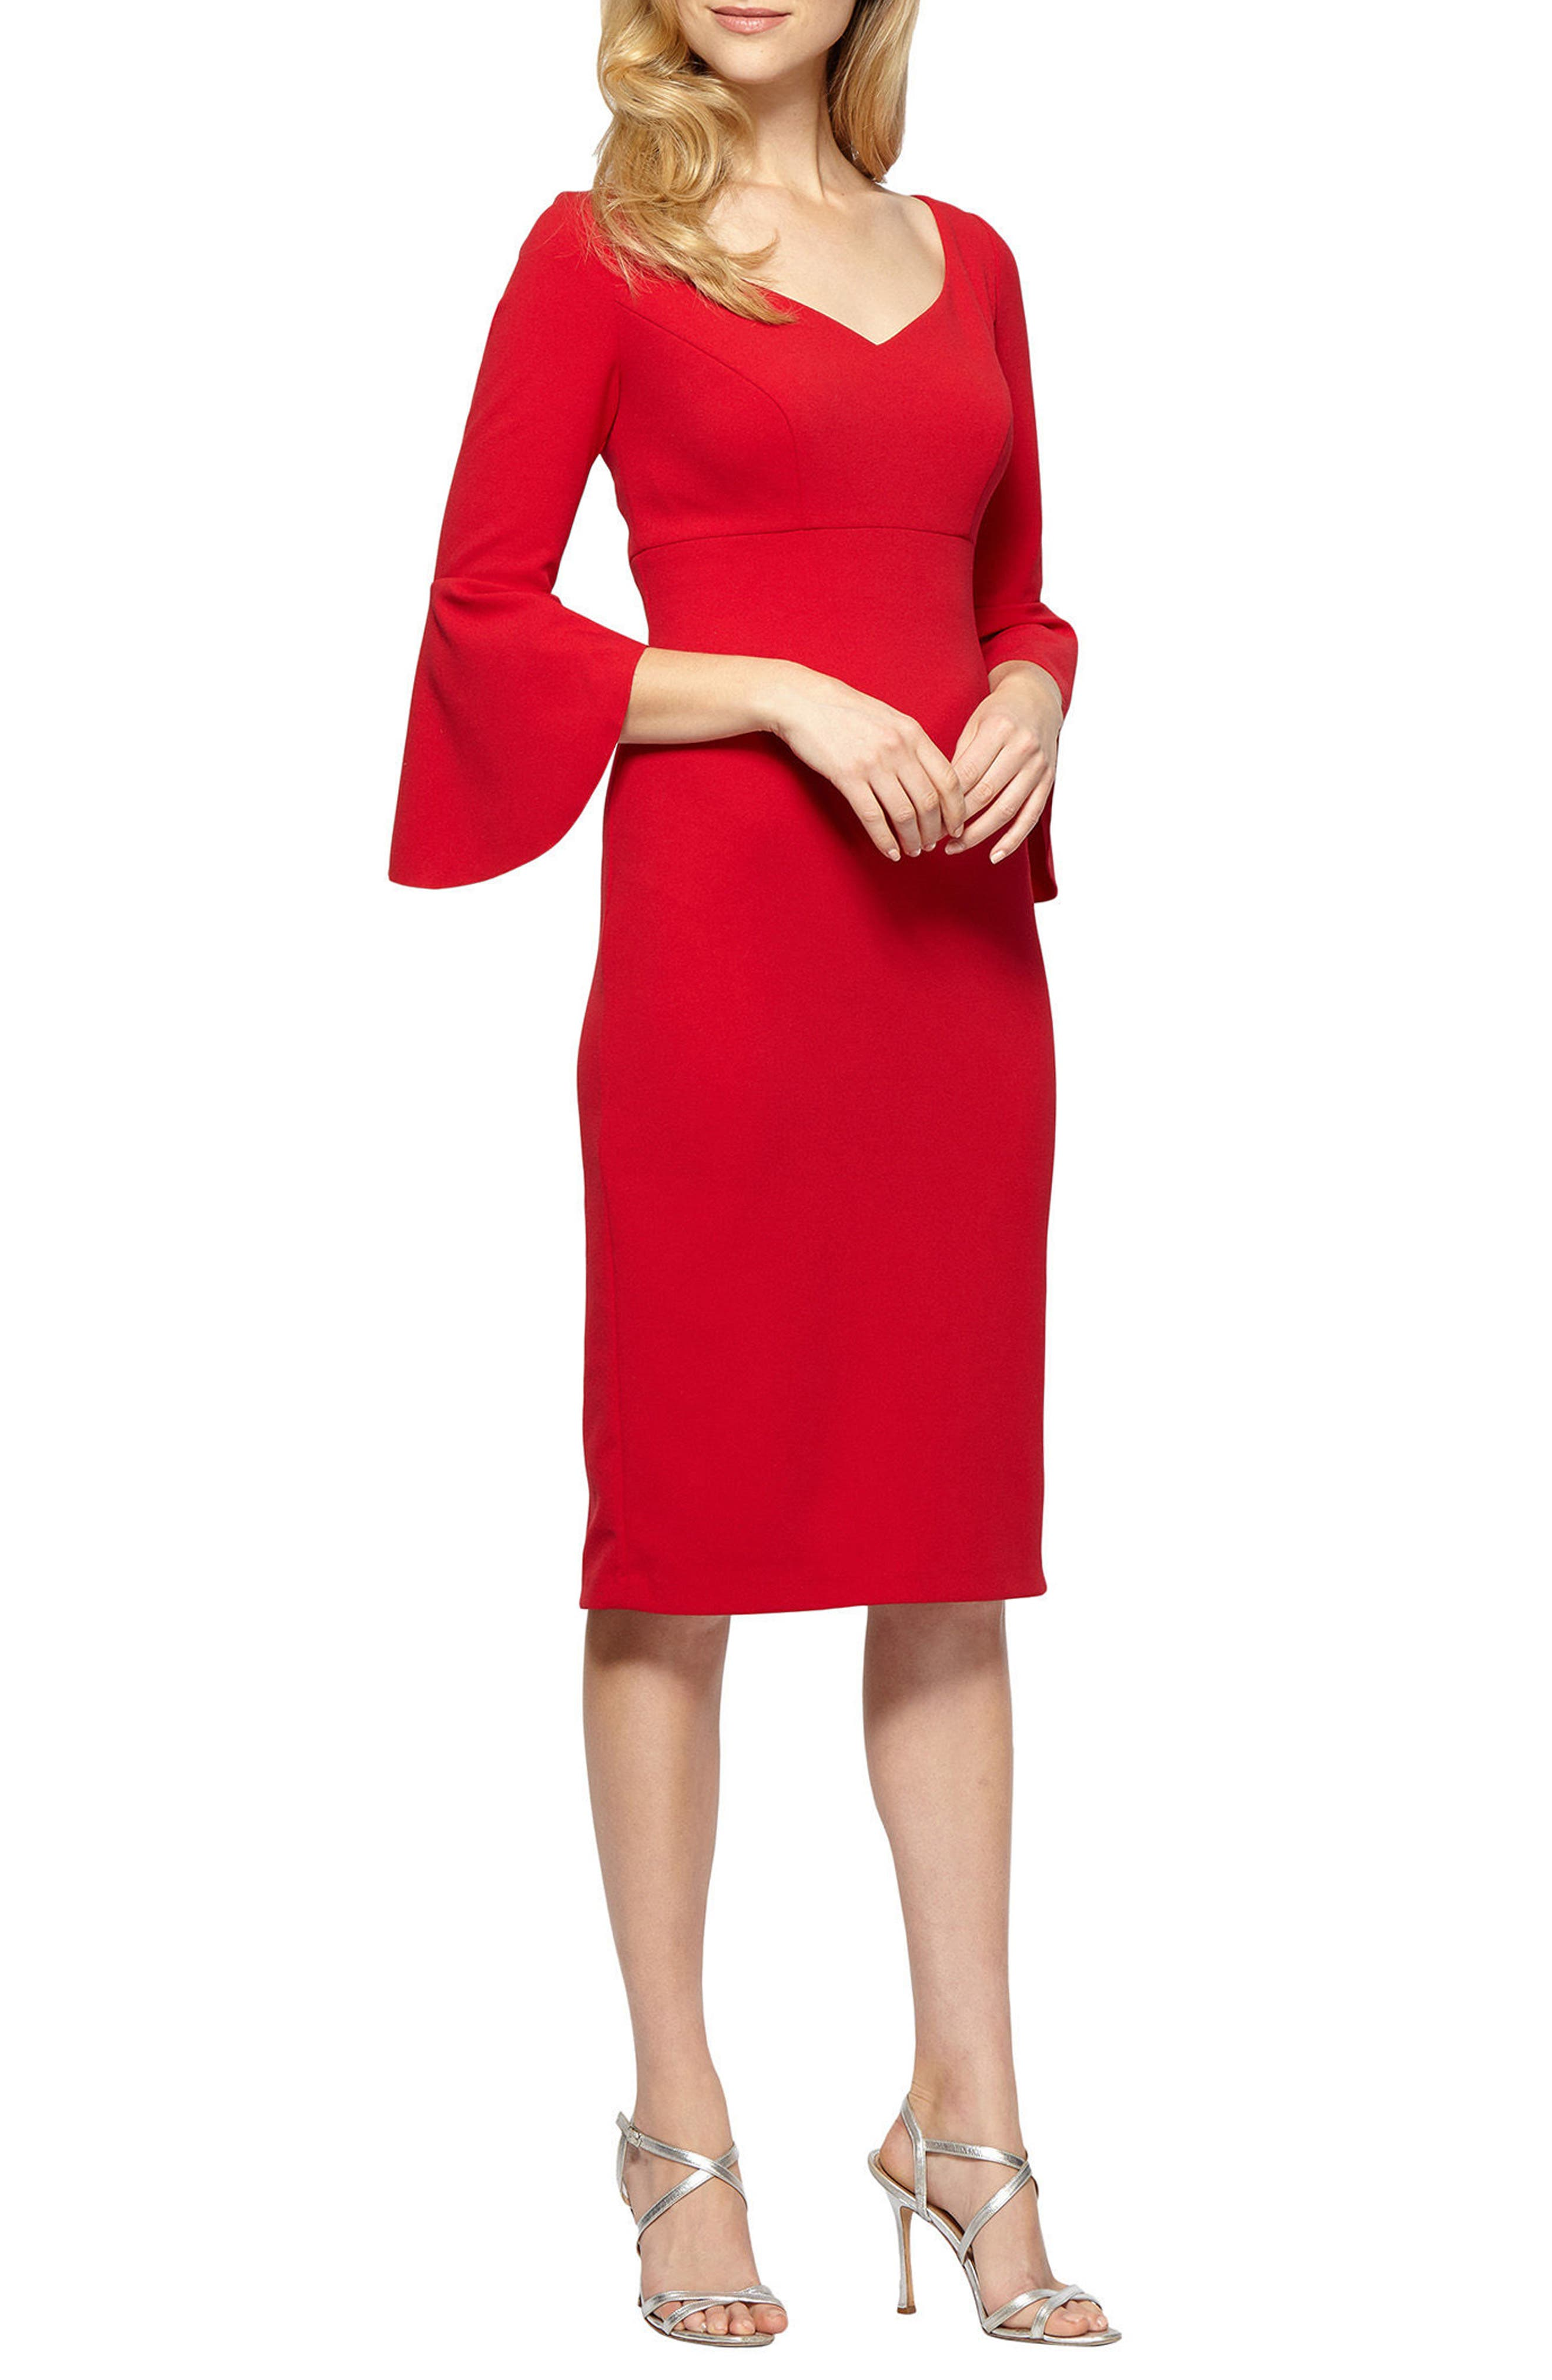 Alternate Image 1 Selected - Alex Evenings Bell Sleeve Sheath Dress (Regular & Petite)